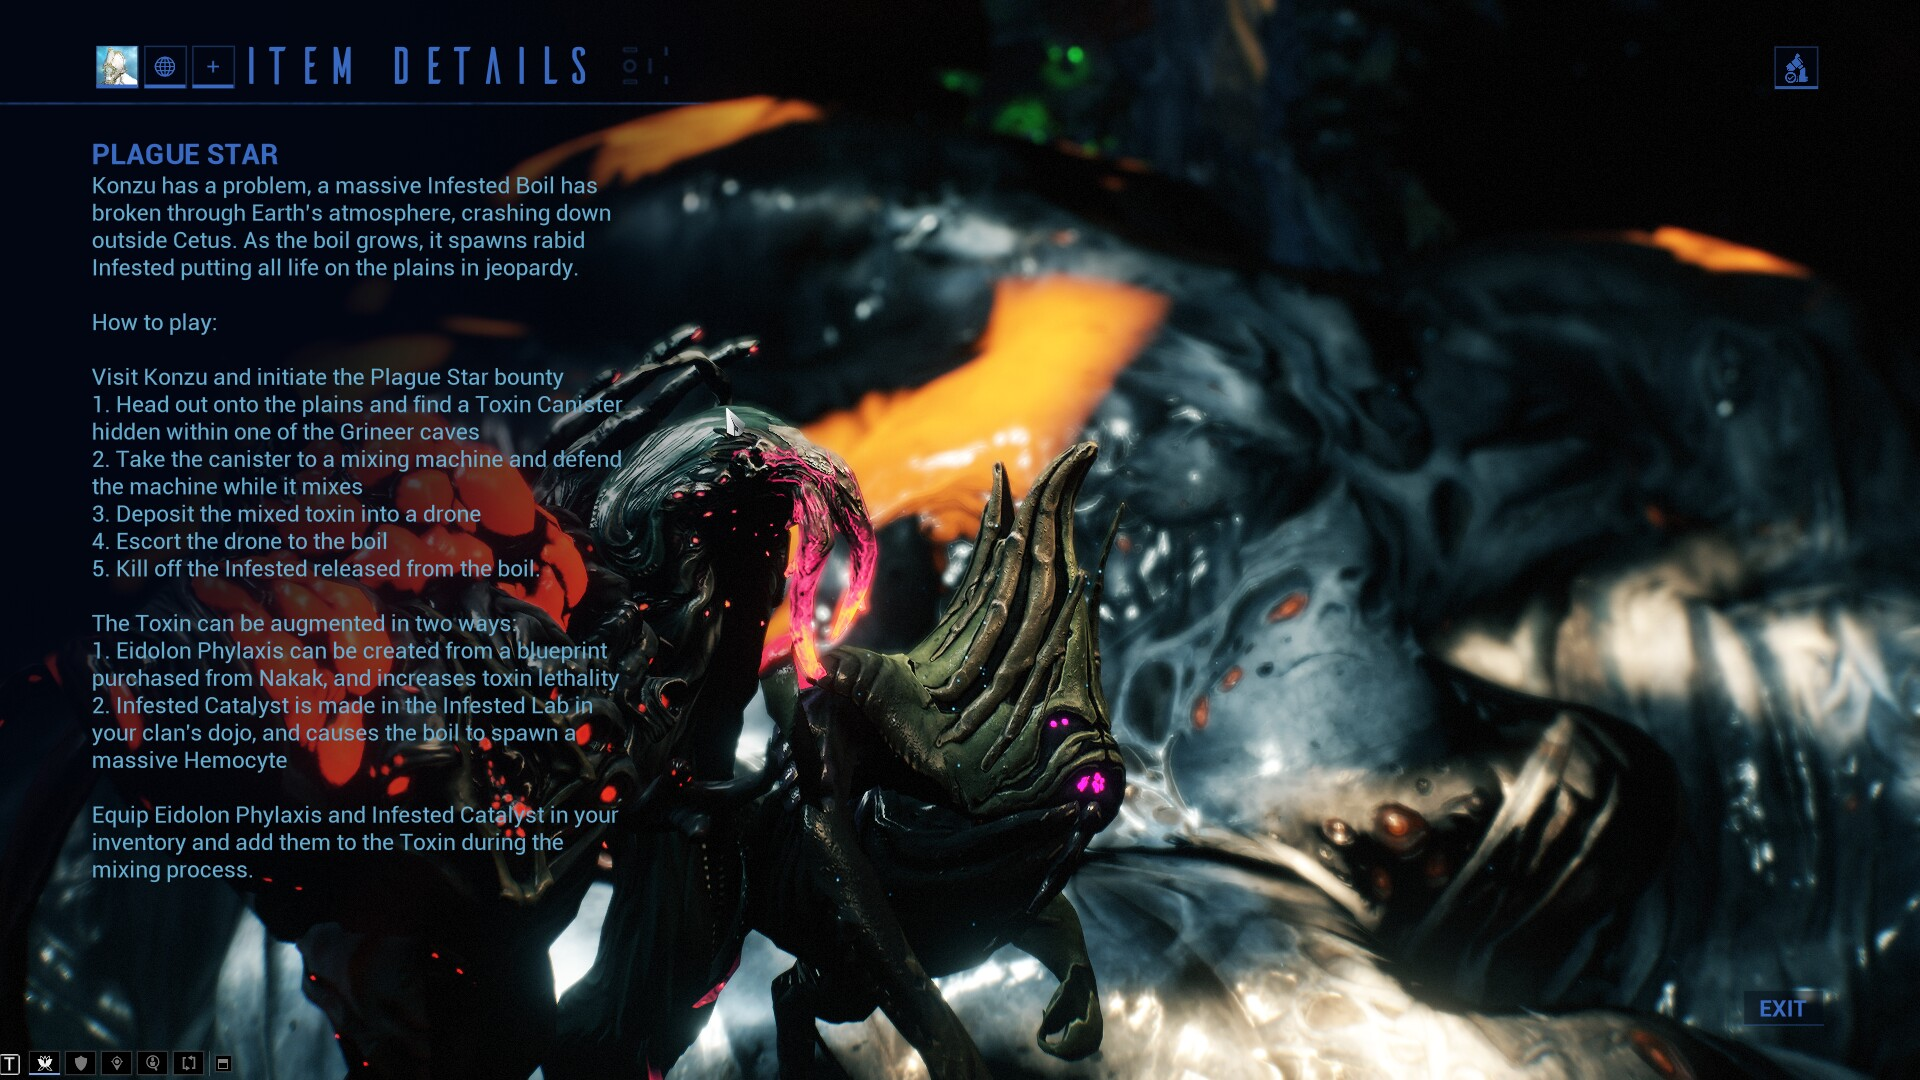 Warframe - How To Kill The Hemocyte During Operation Plague Star